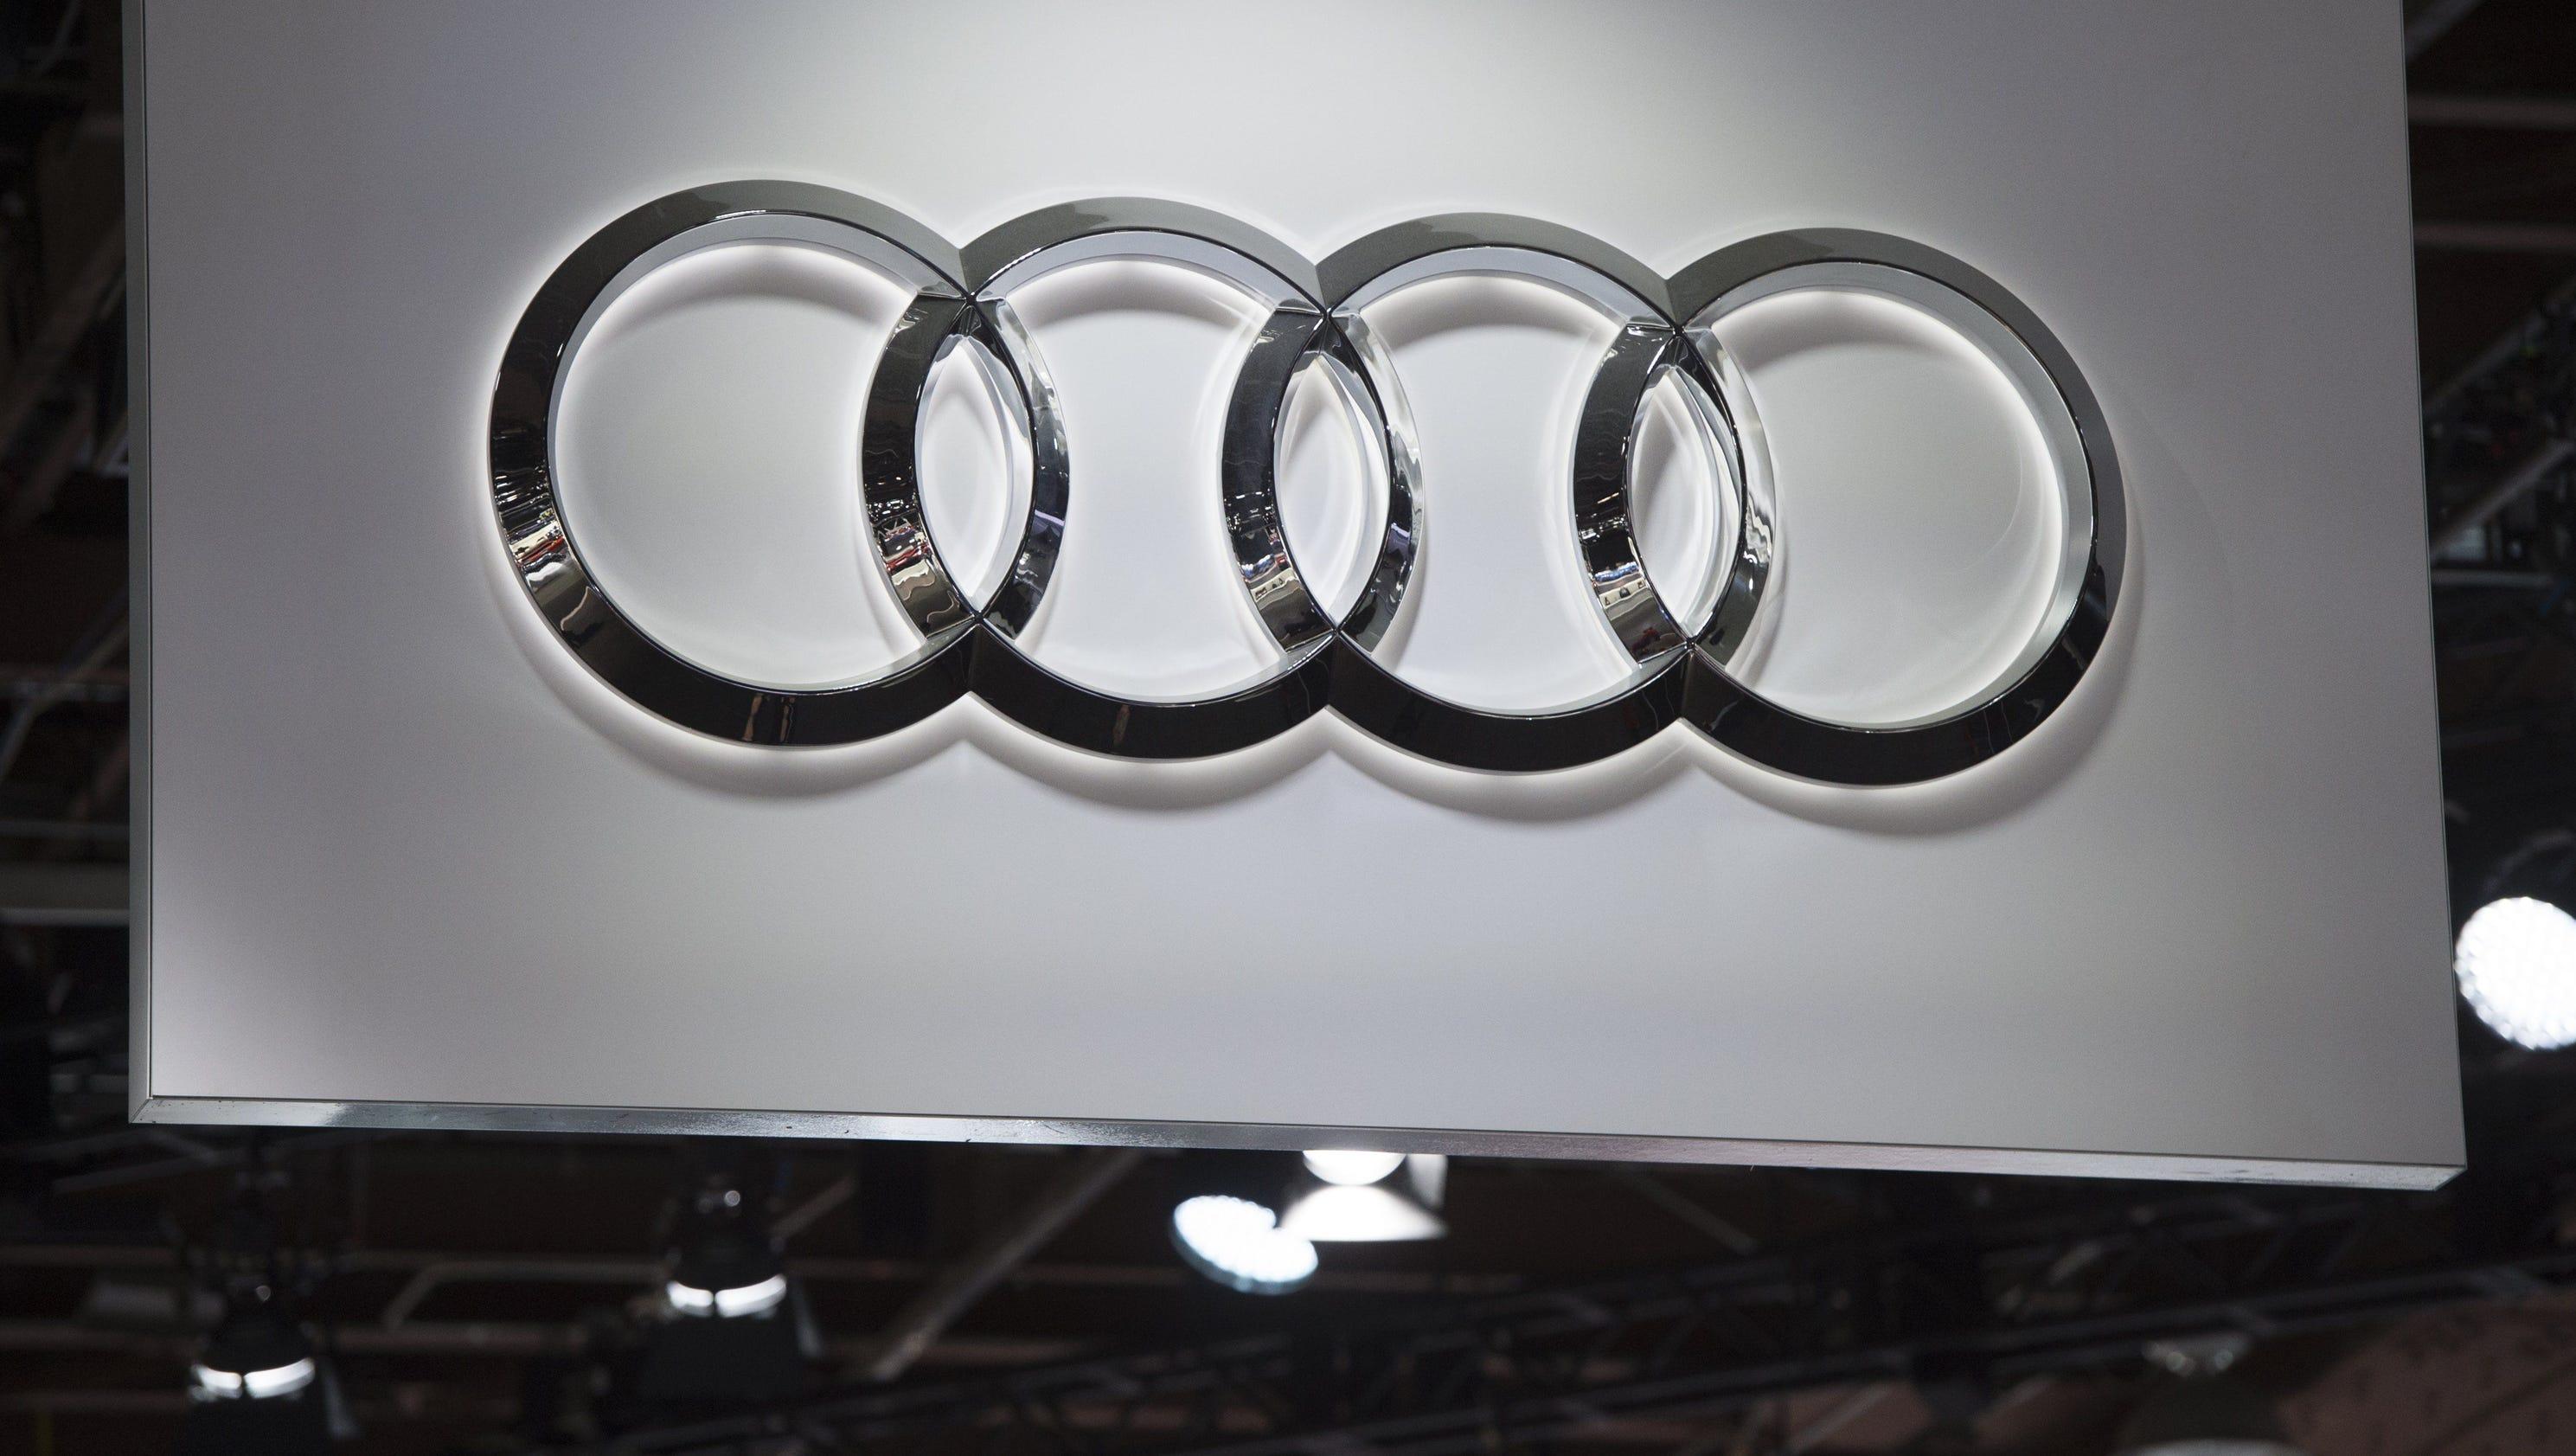 Audi Apologizes For Sexist Ad In China Comparing Women To